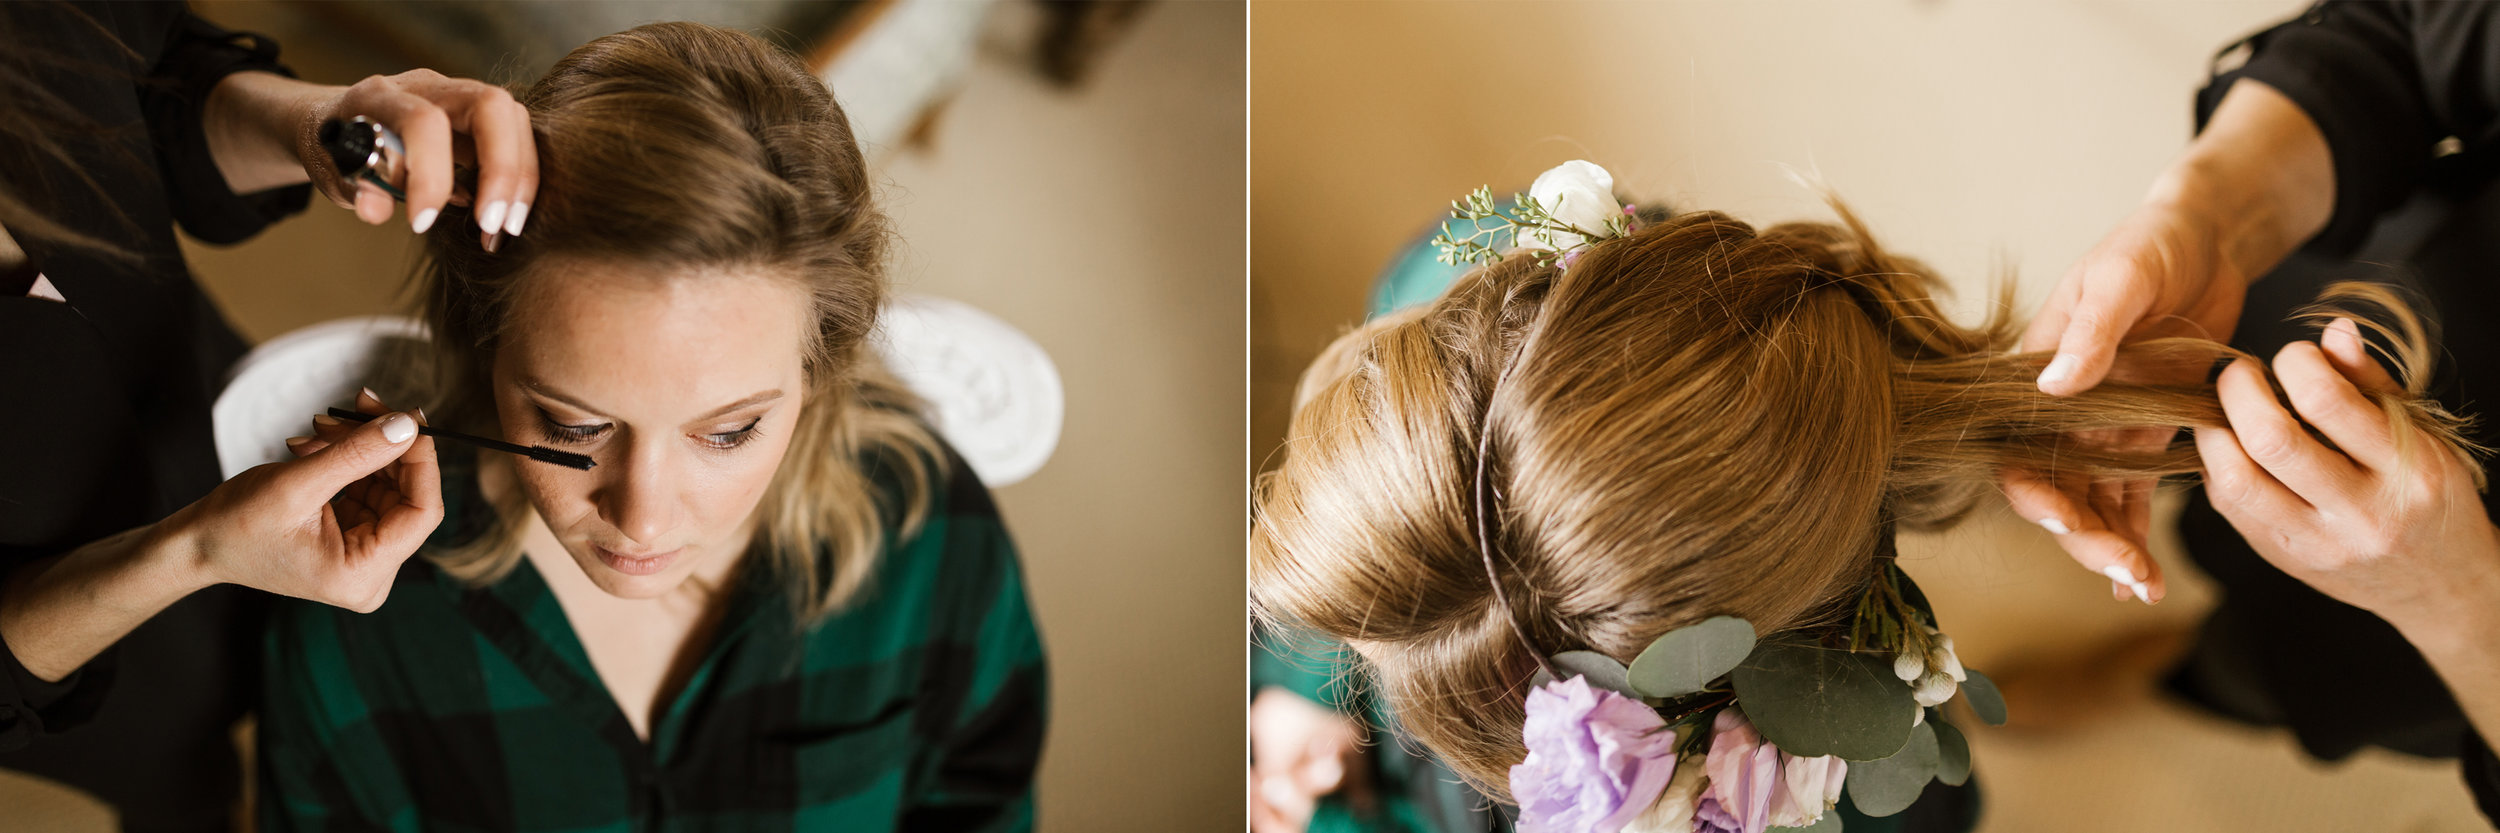 intimate-in-home-carbondale-wedding_PS.jpg